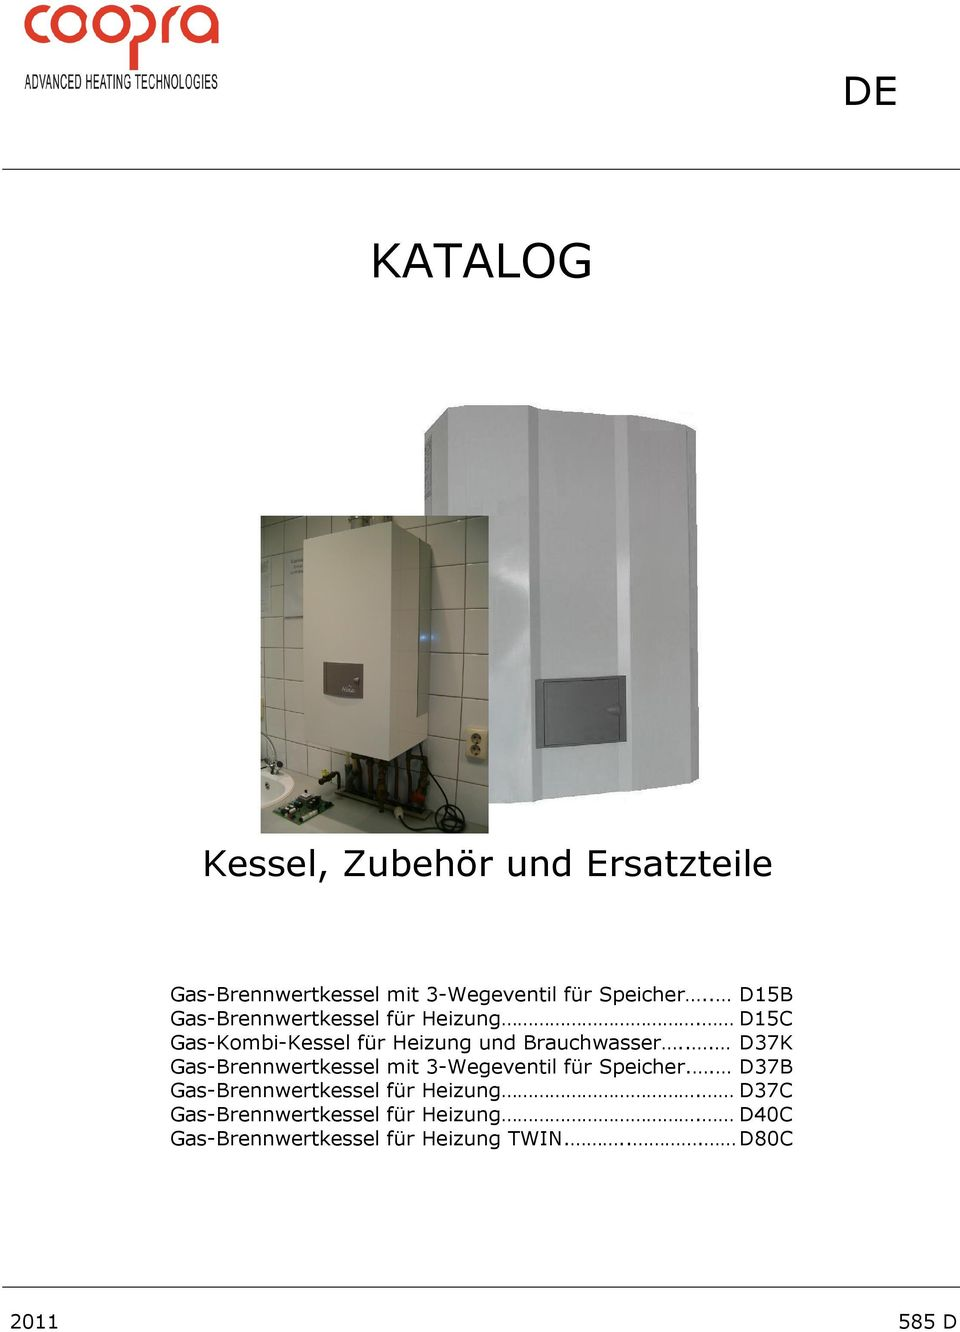 katalog kessel zubeh r und ersatzteile pdf. Black Bedroom Furniture Sets. Home Design Ideas